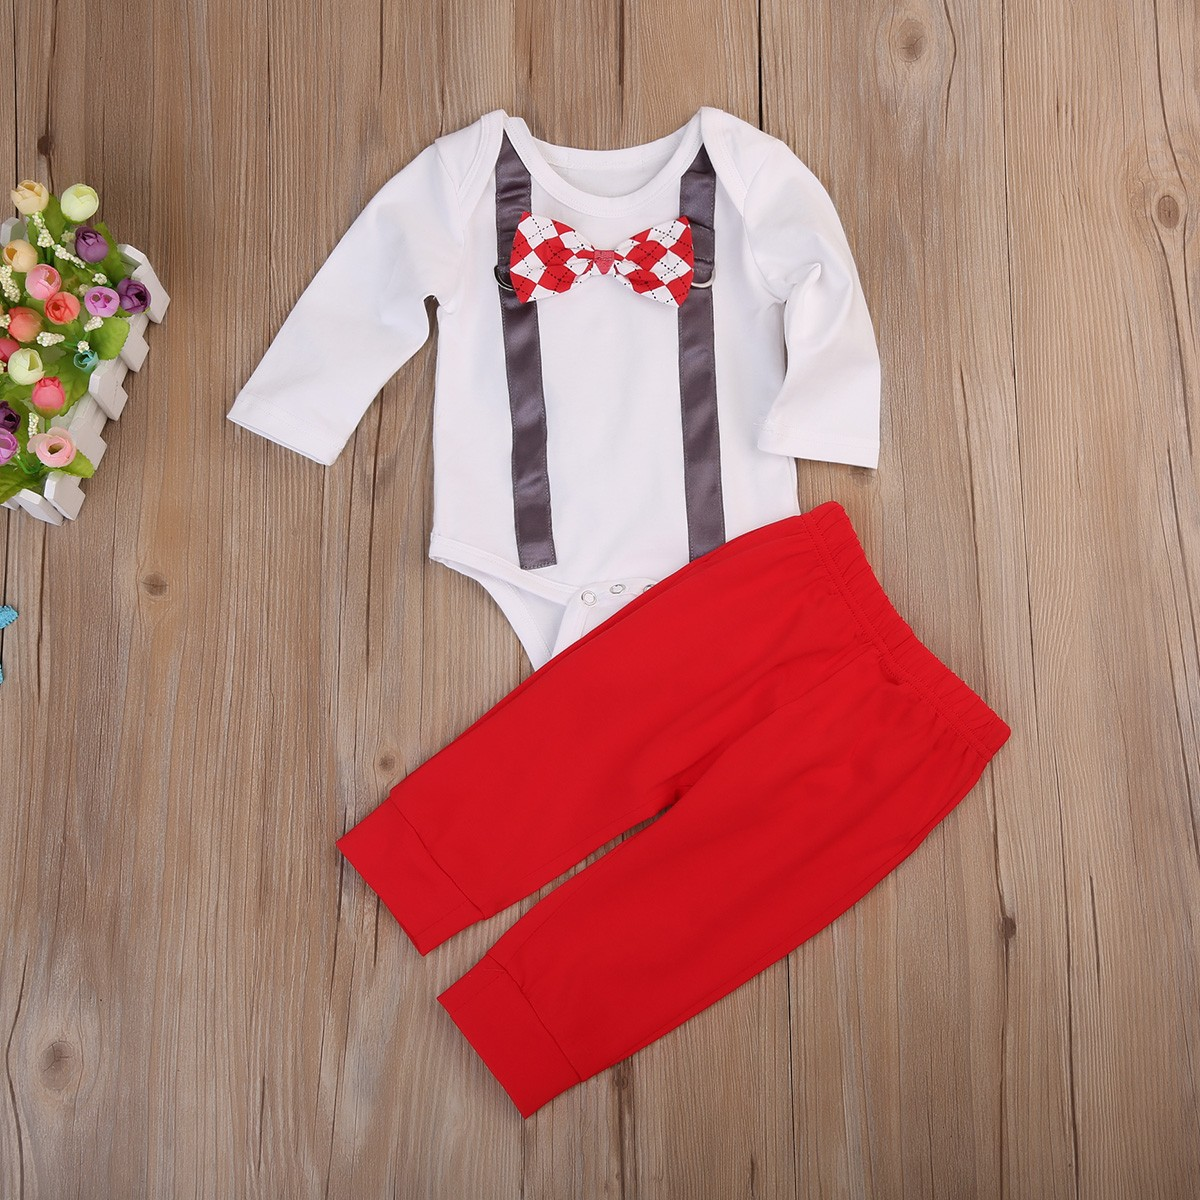 6b30e9ac9949 Mareya Trade - Newborn Baby Boy Fake Suspender Print Romper Pants ...